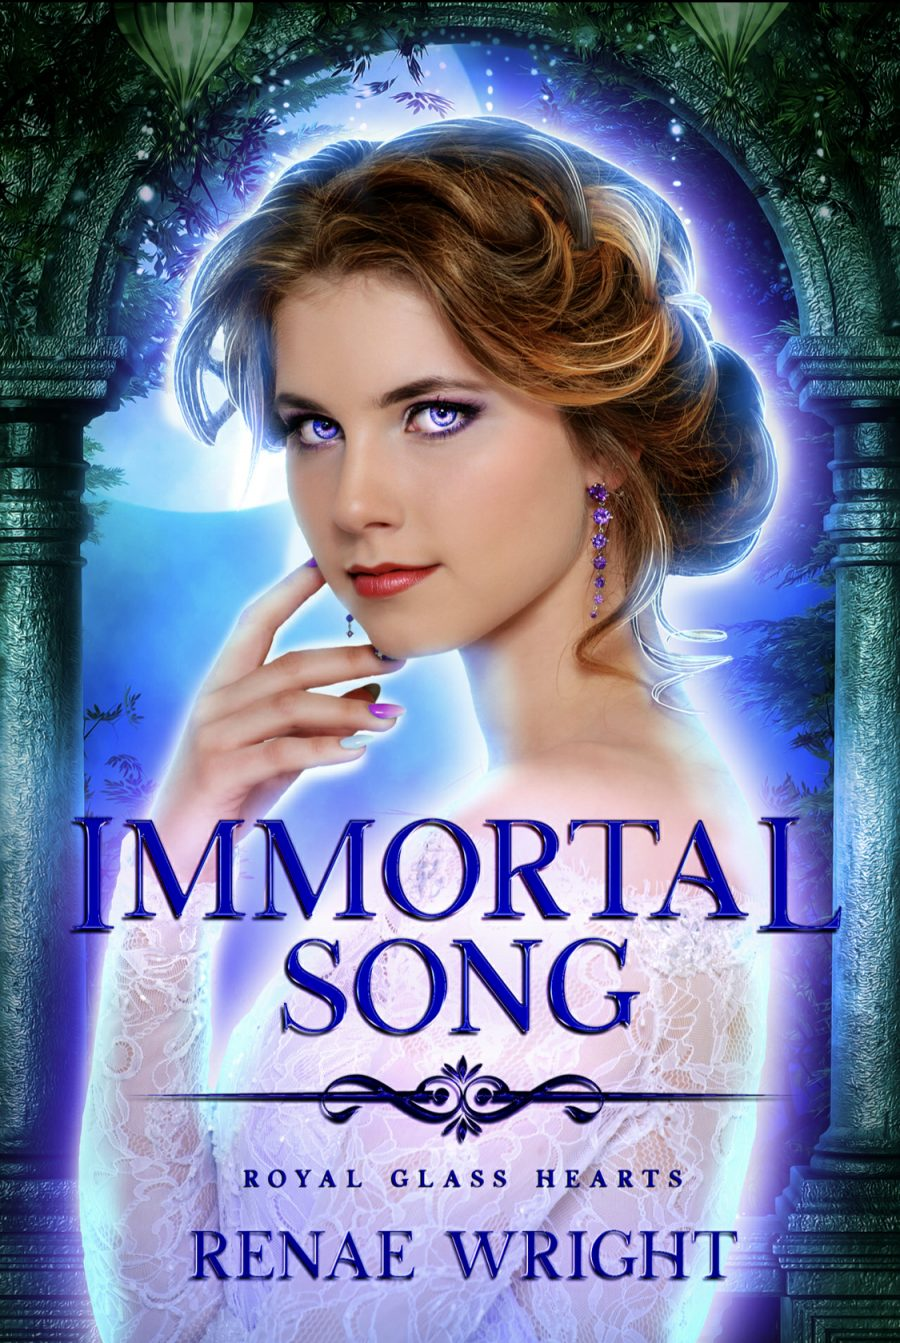 Immortal Song by Renae Wright - A Book Review #BookReview #SlowBurn #RH #FairyTale #4Stars #Book2 #Shifters #Vampires #Fae #Siren #KindleUnlimited #KU